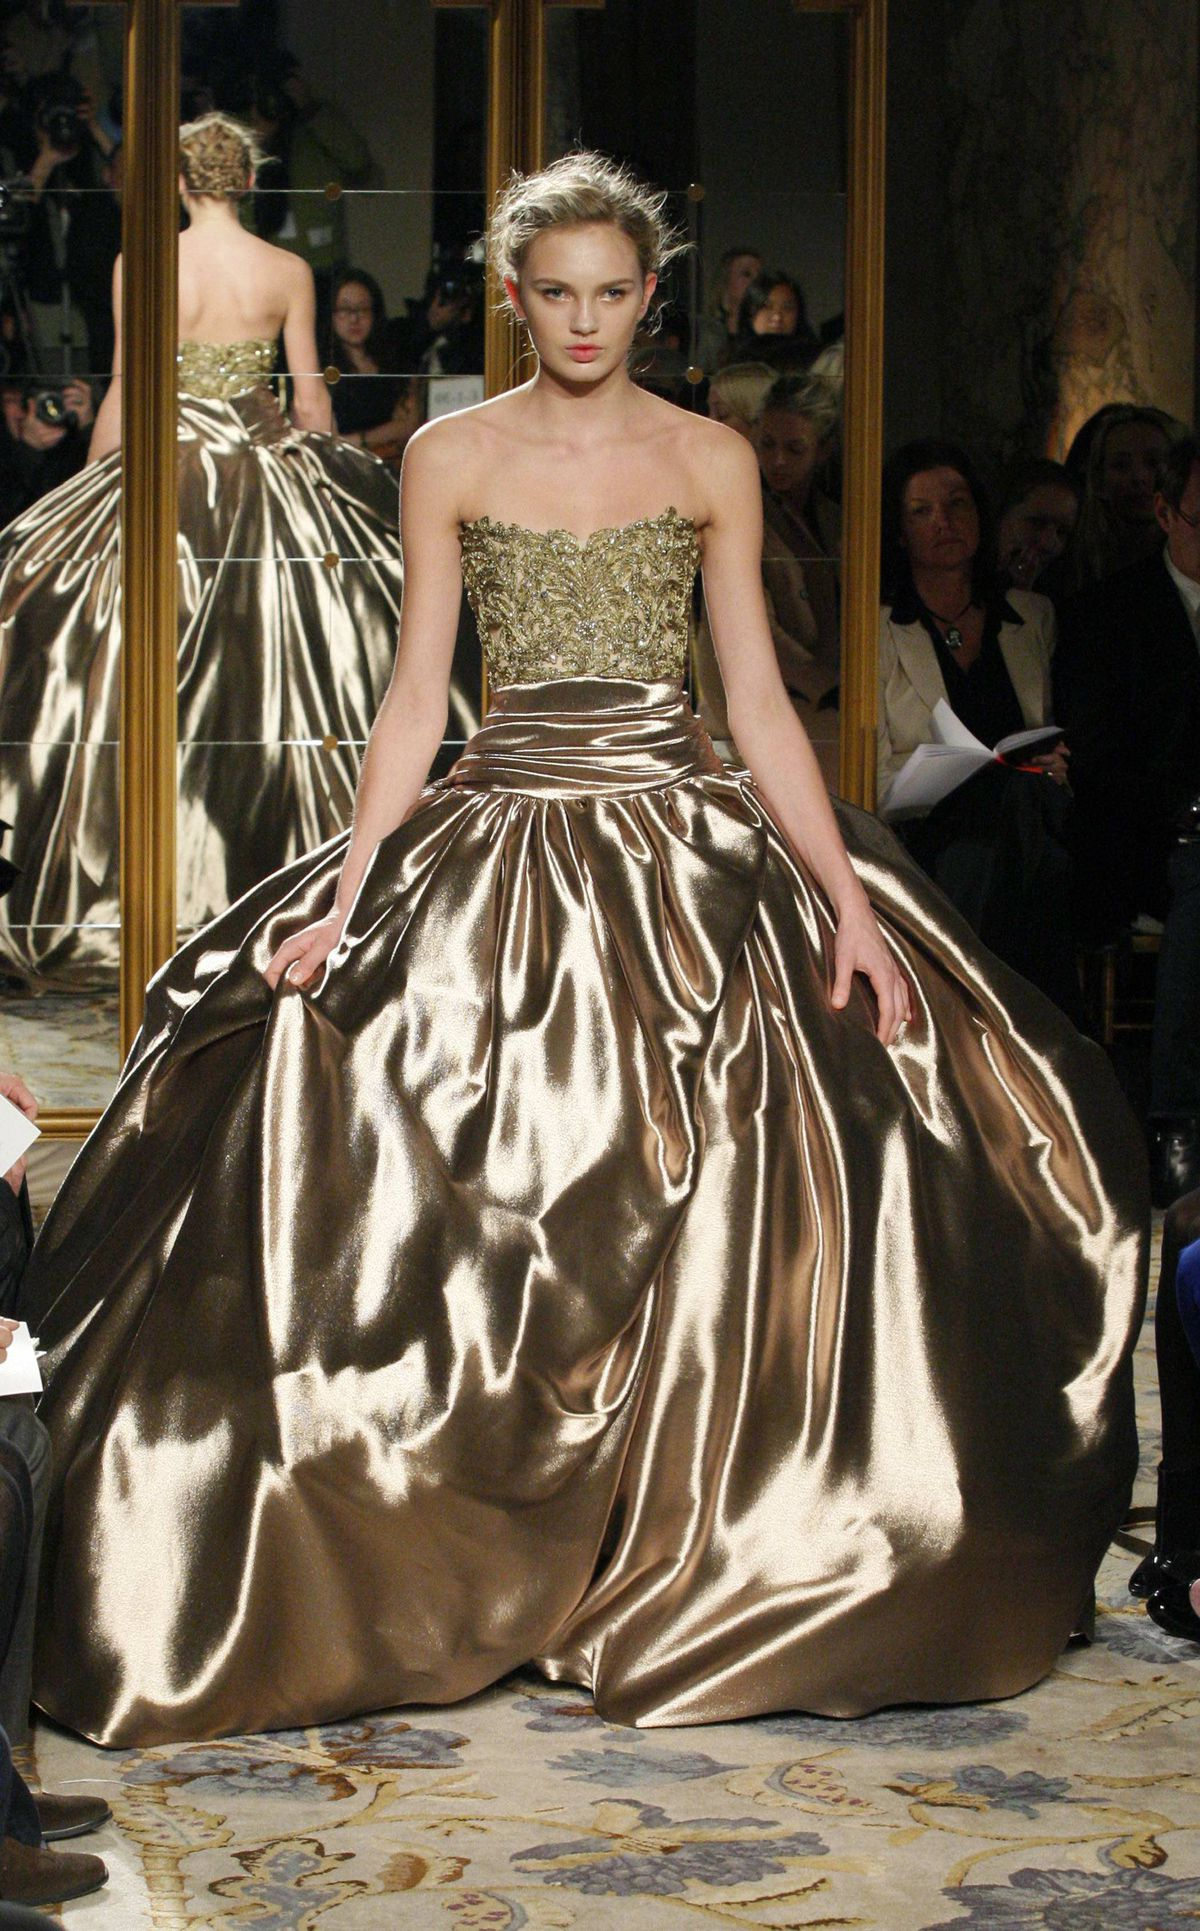 This gown could easily end up on the Oscar red carpet. Aside from the dazzling liquid gold effect of the lamé, the circumference of the hand-draped pouf skirt would appeal to any actress requiring a large body bubble.